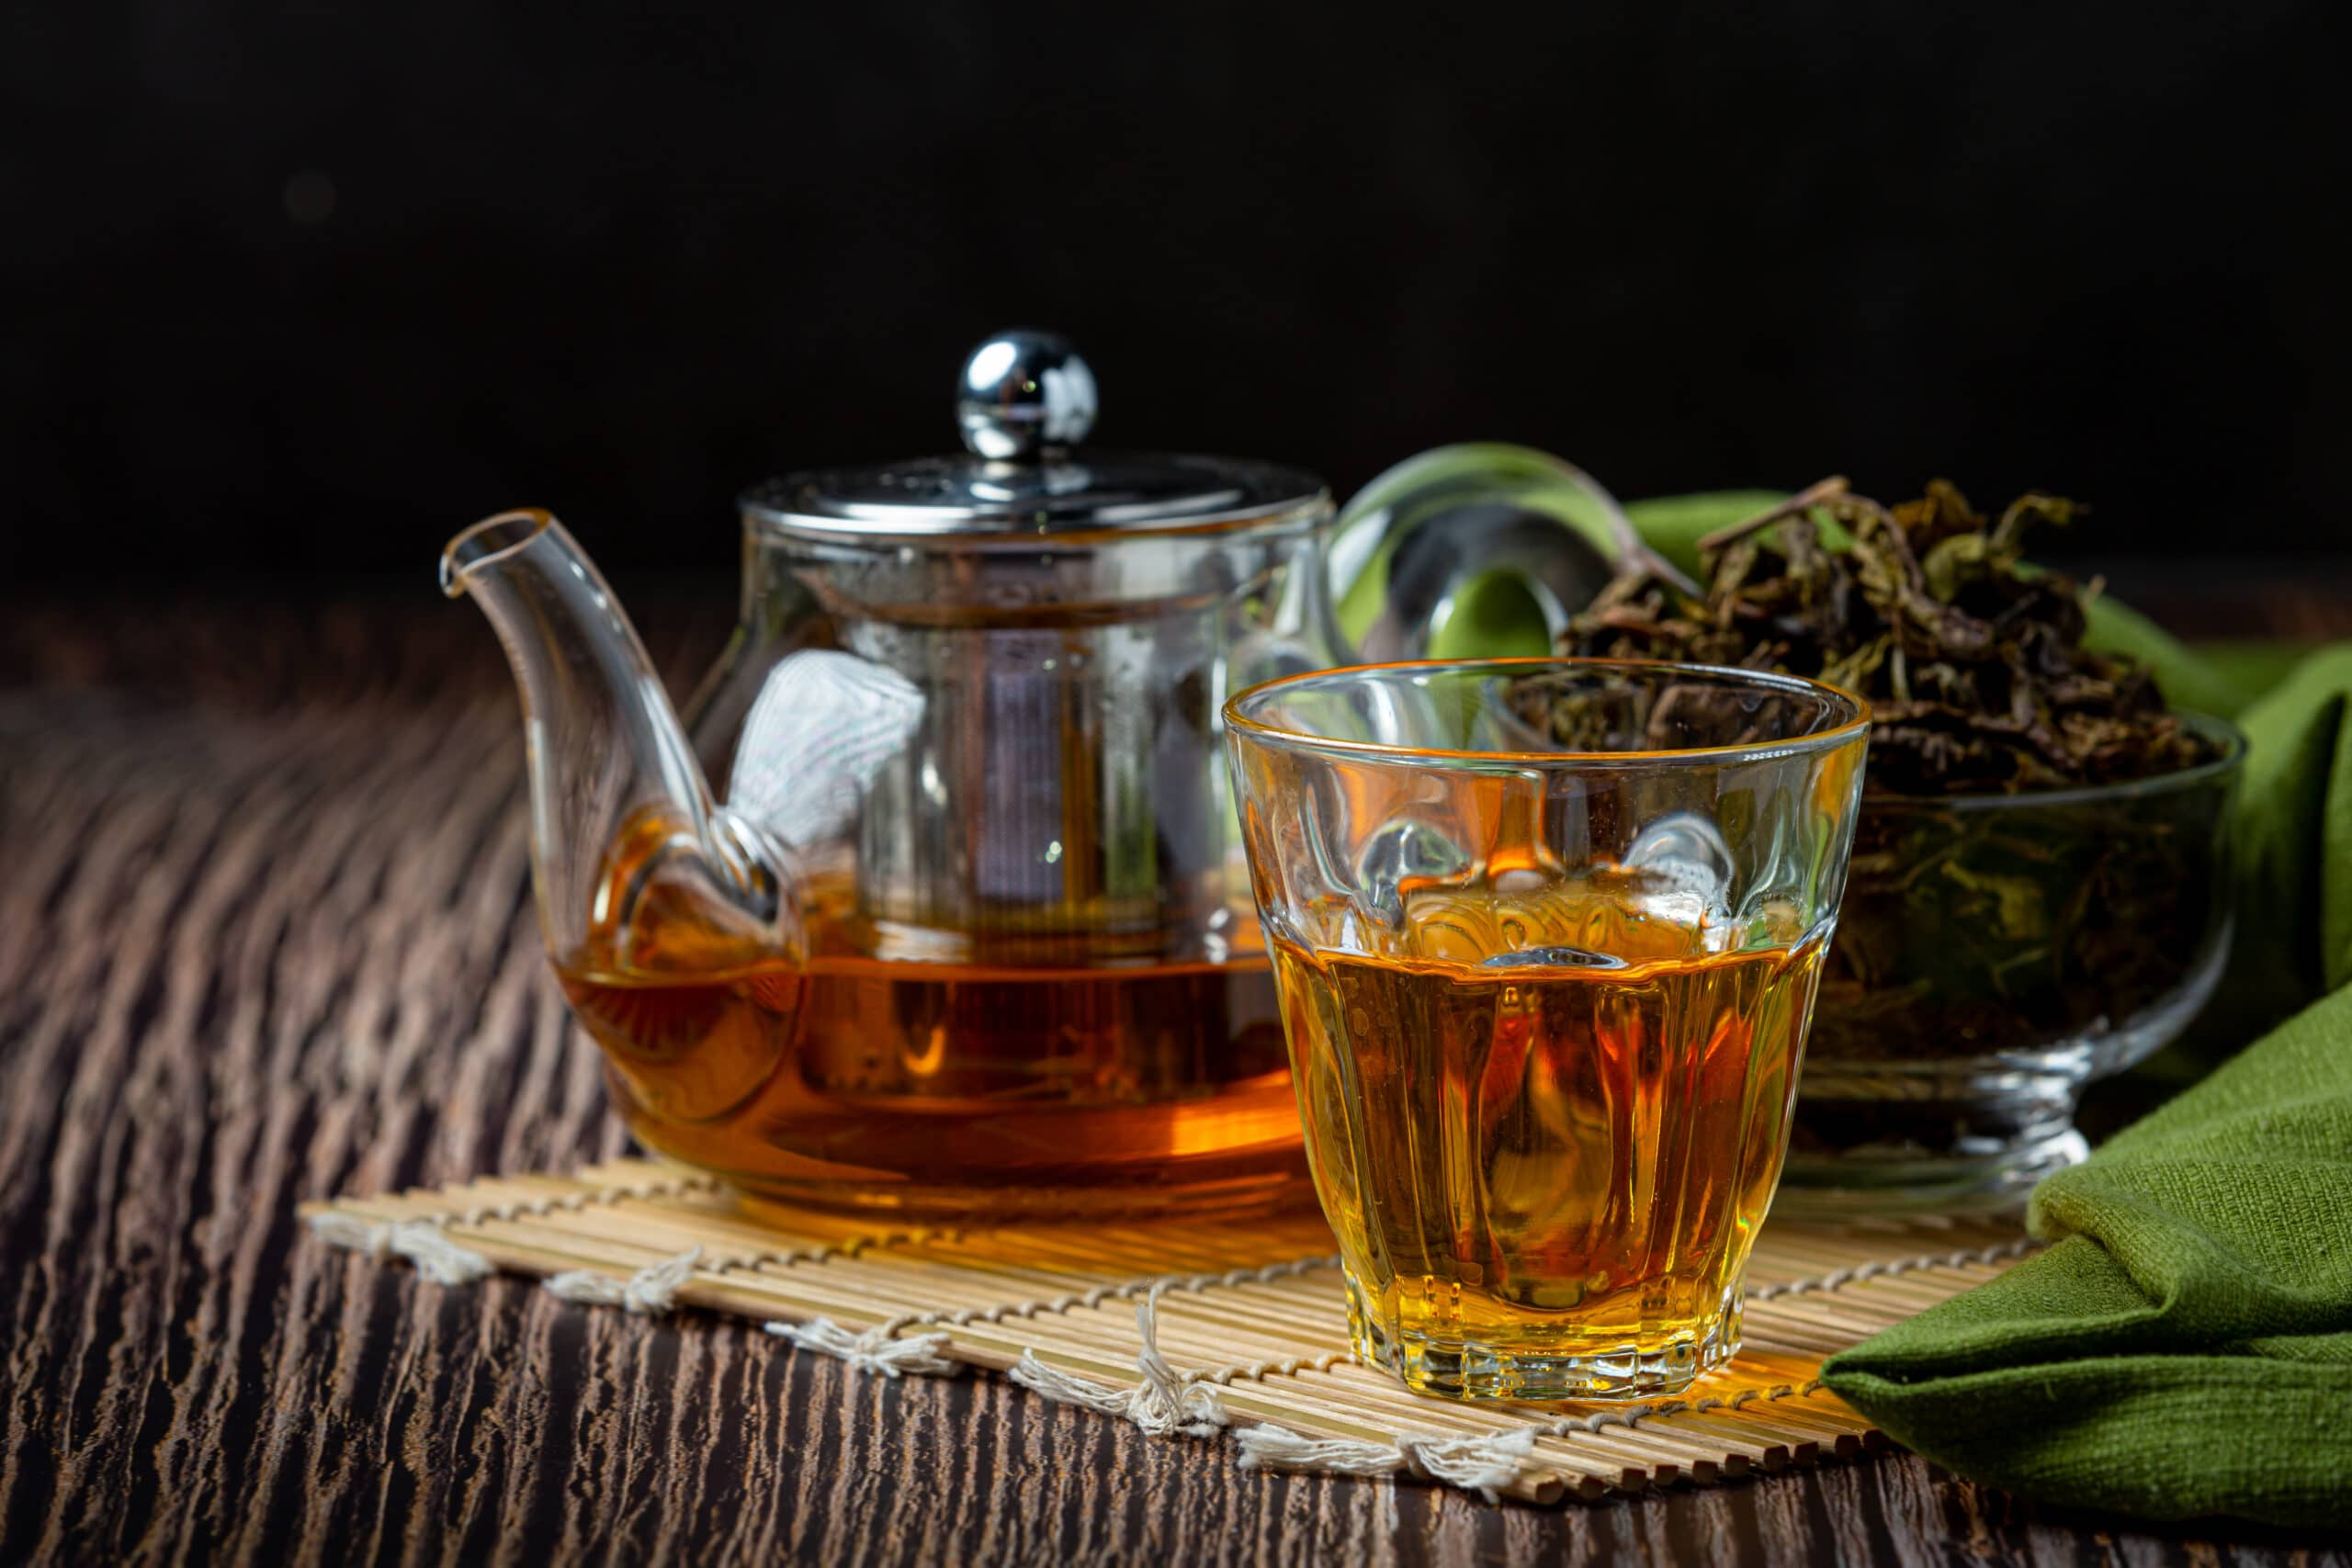 Oolong green tea in a teapot and bowl.